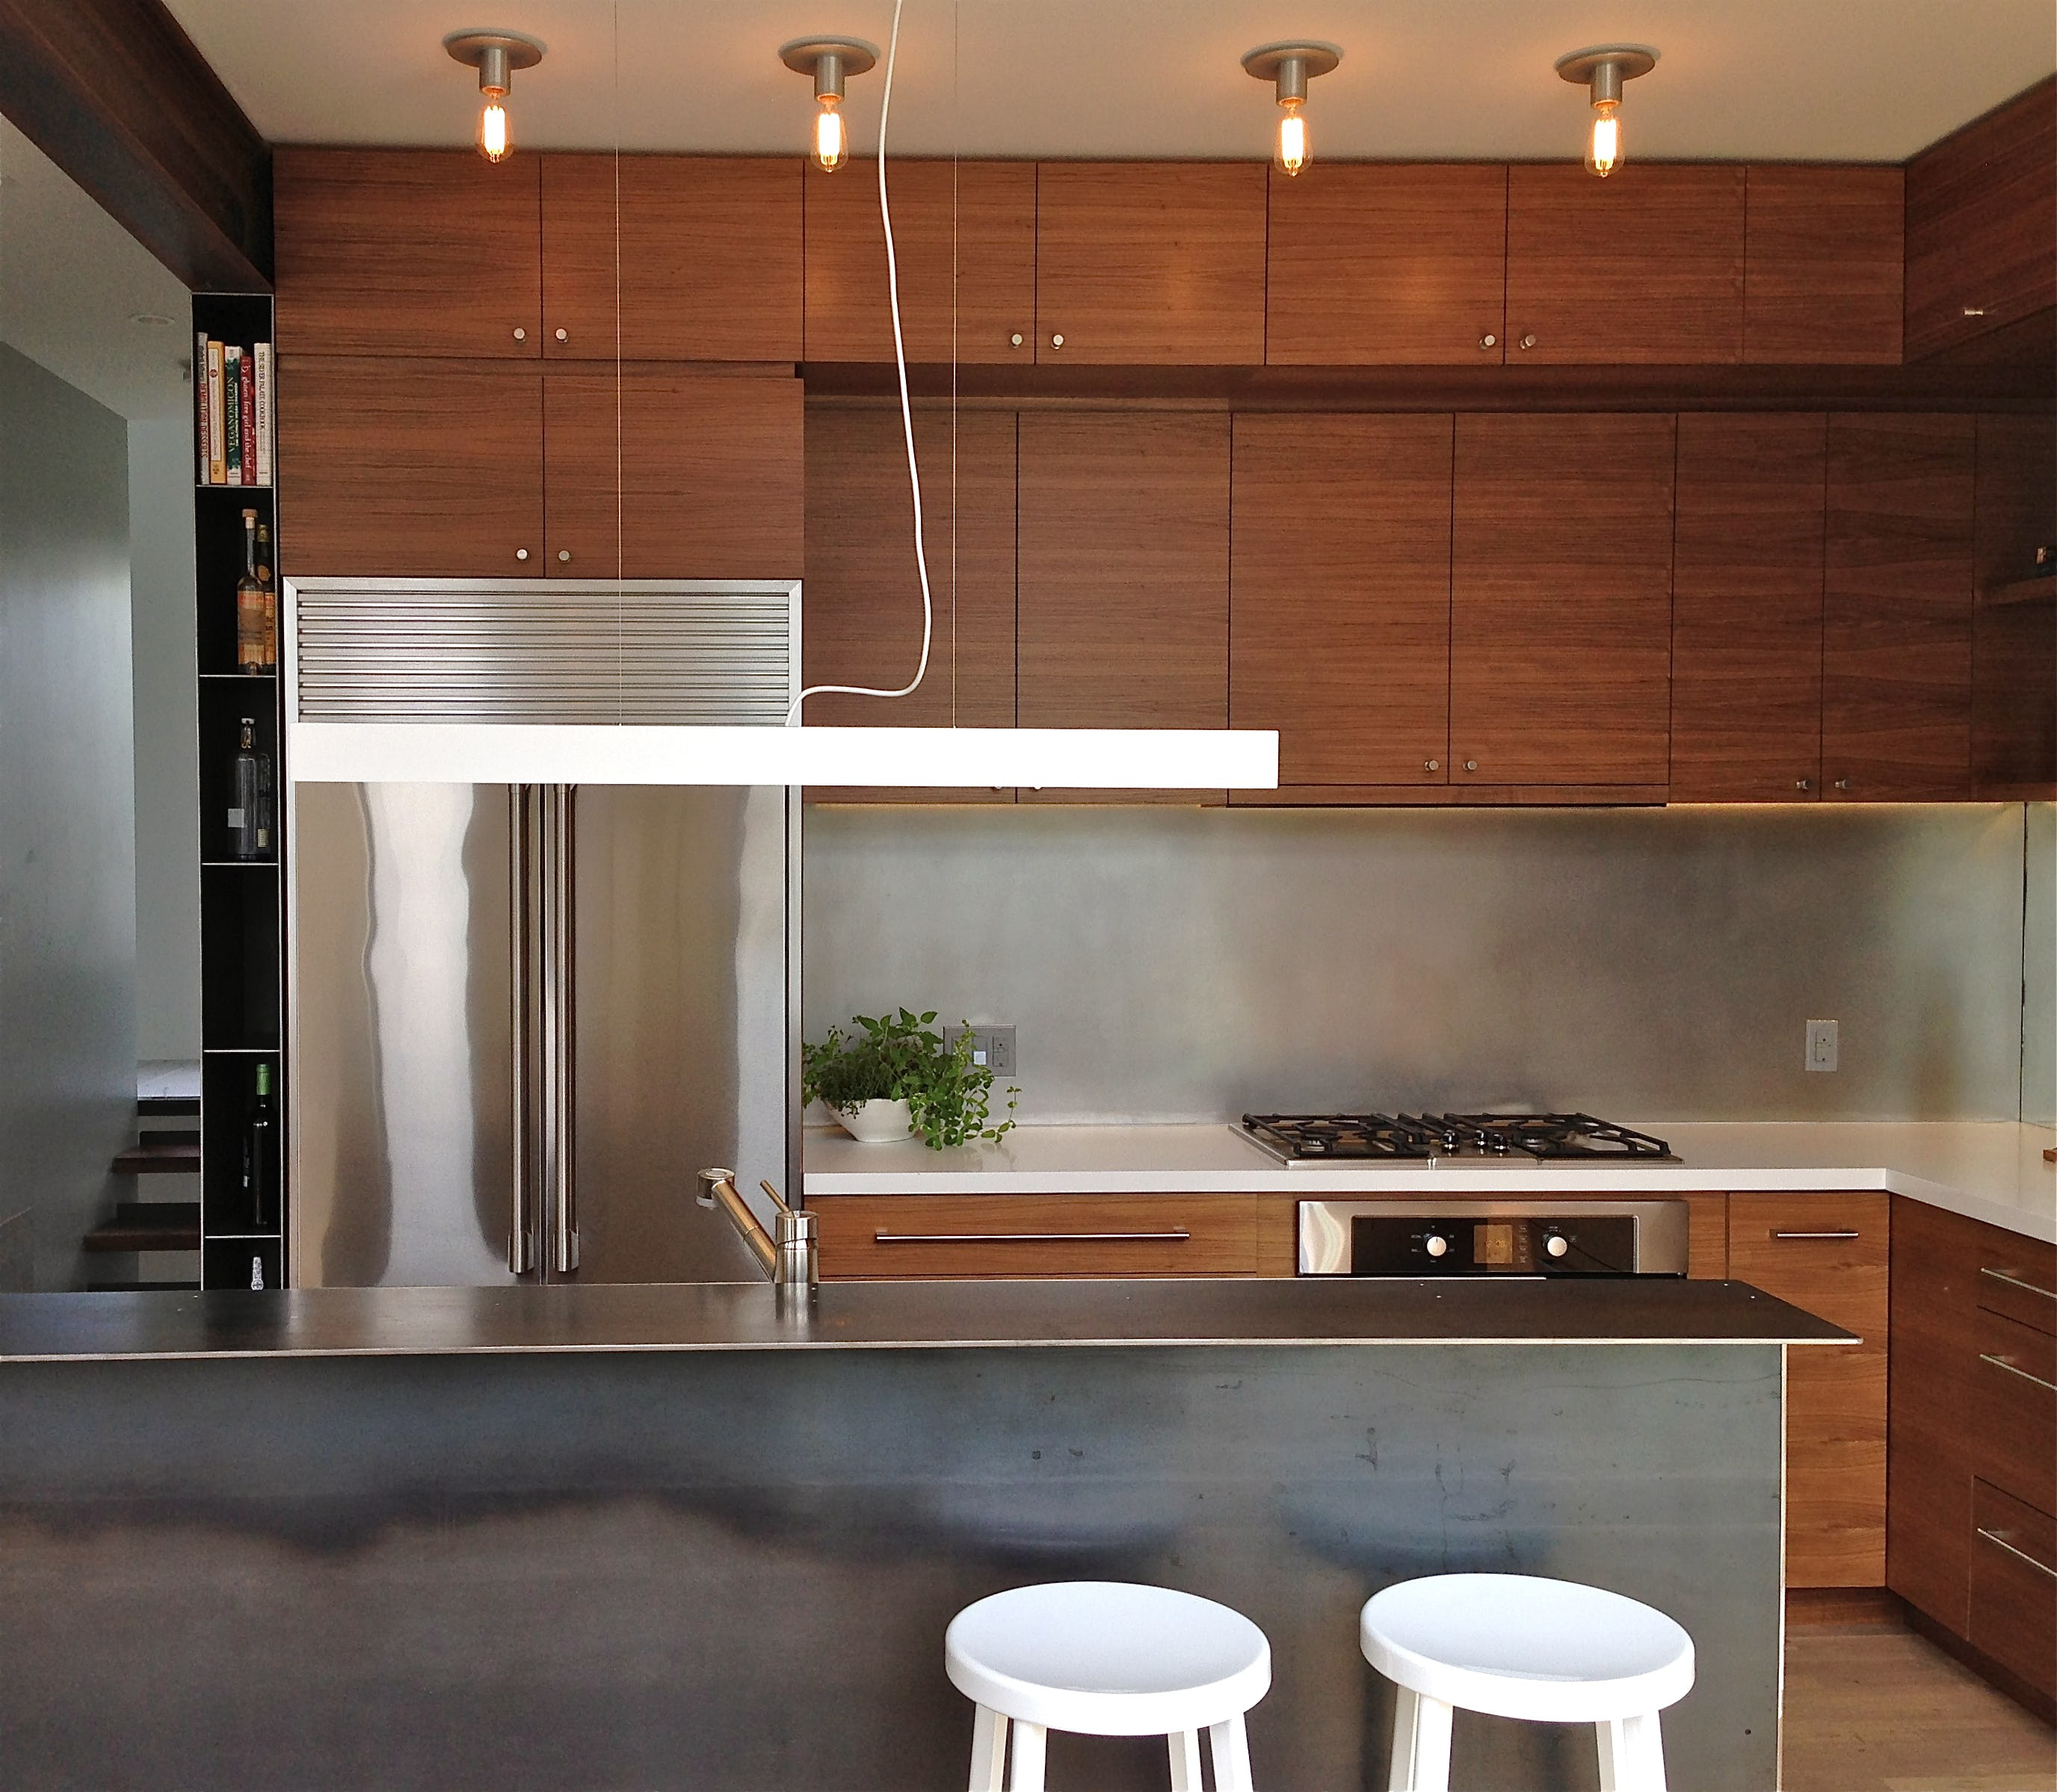 Builtform construction  steelhouse1 2 wood kitchen modern steel